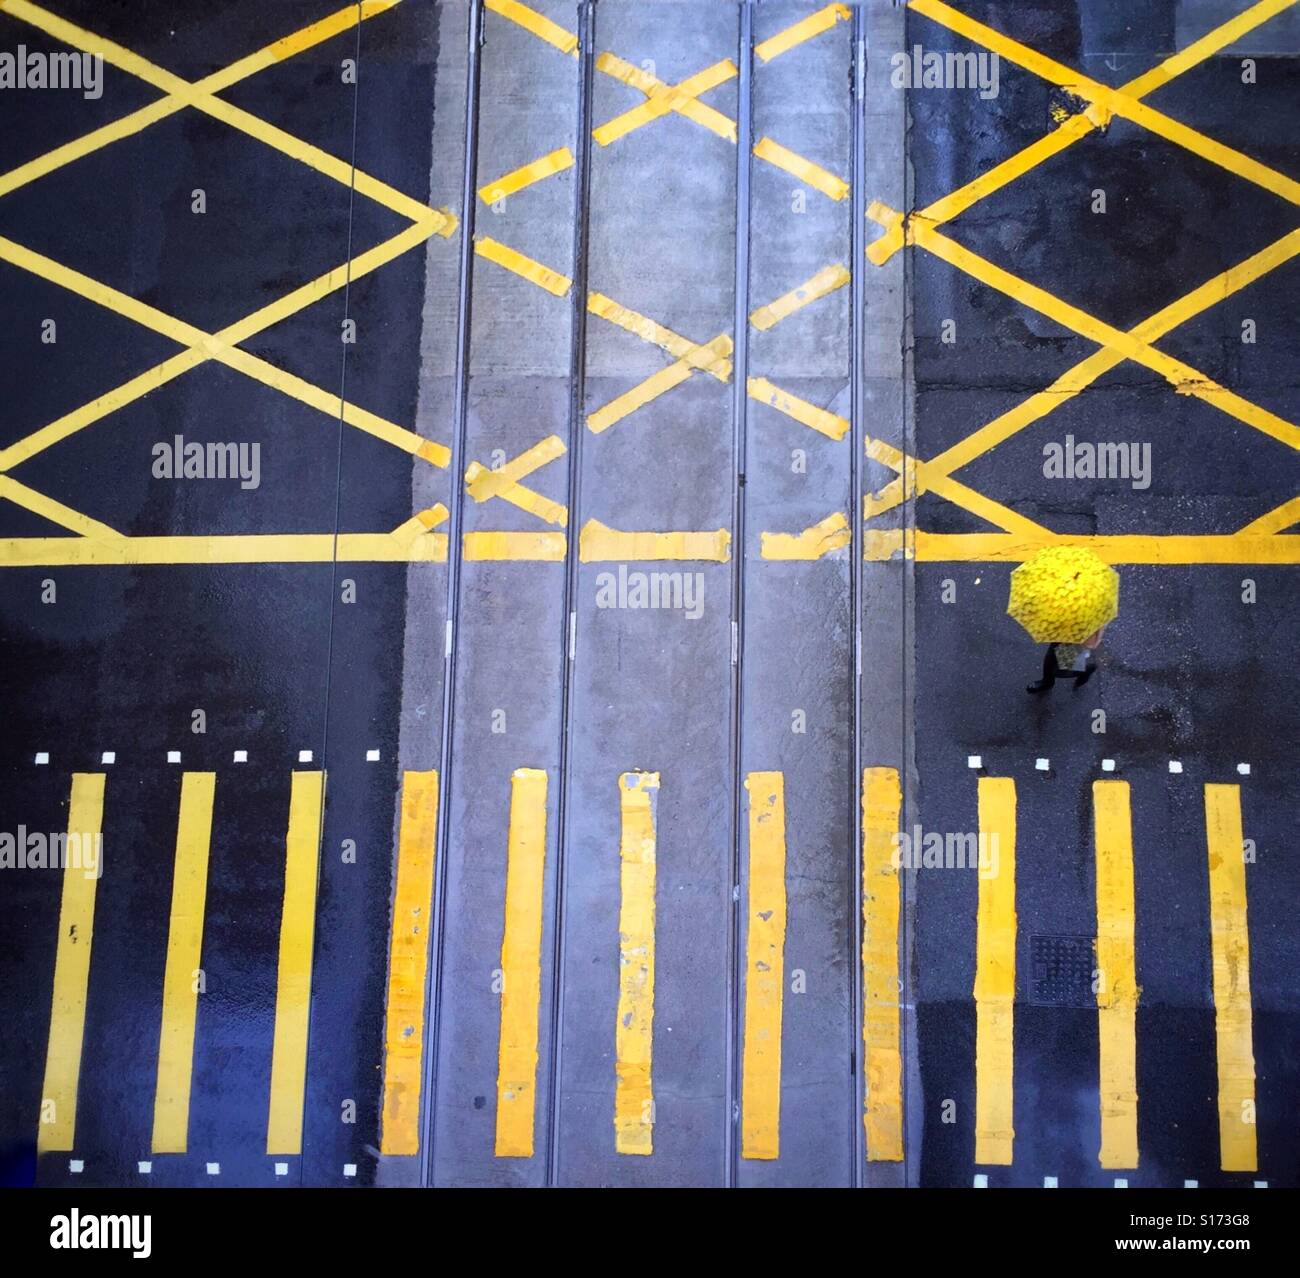 Yellow umbrella and yellow lines - Stock Image